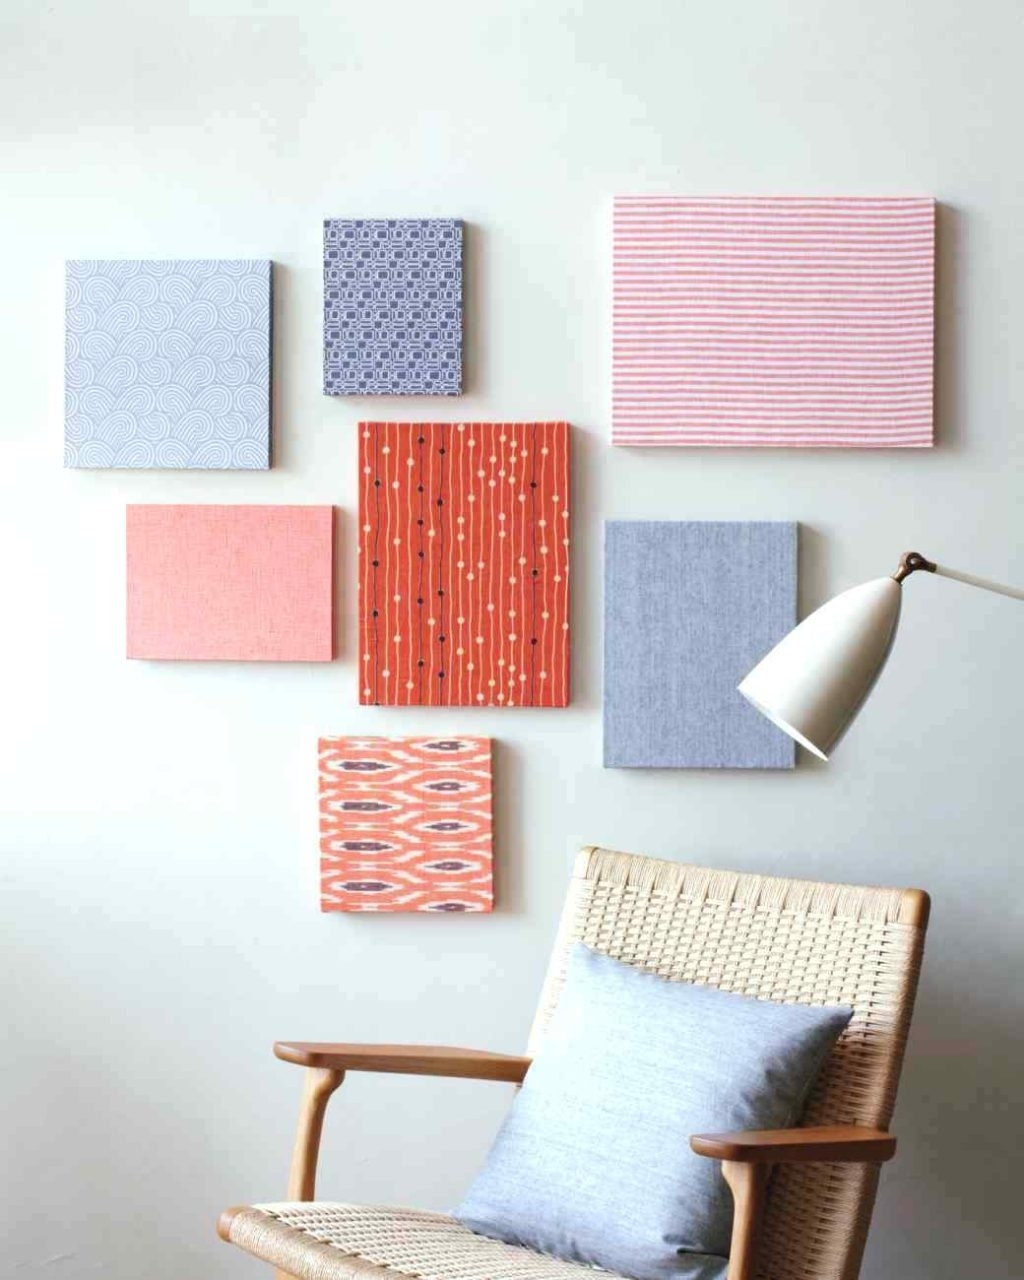 Wall Arts ~ Fabric Art Wall Hangings For Sale Fabric Art Wall Inside Recent Contemporary Fabric Wall Art (View 8 of 15)